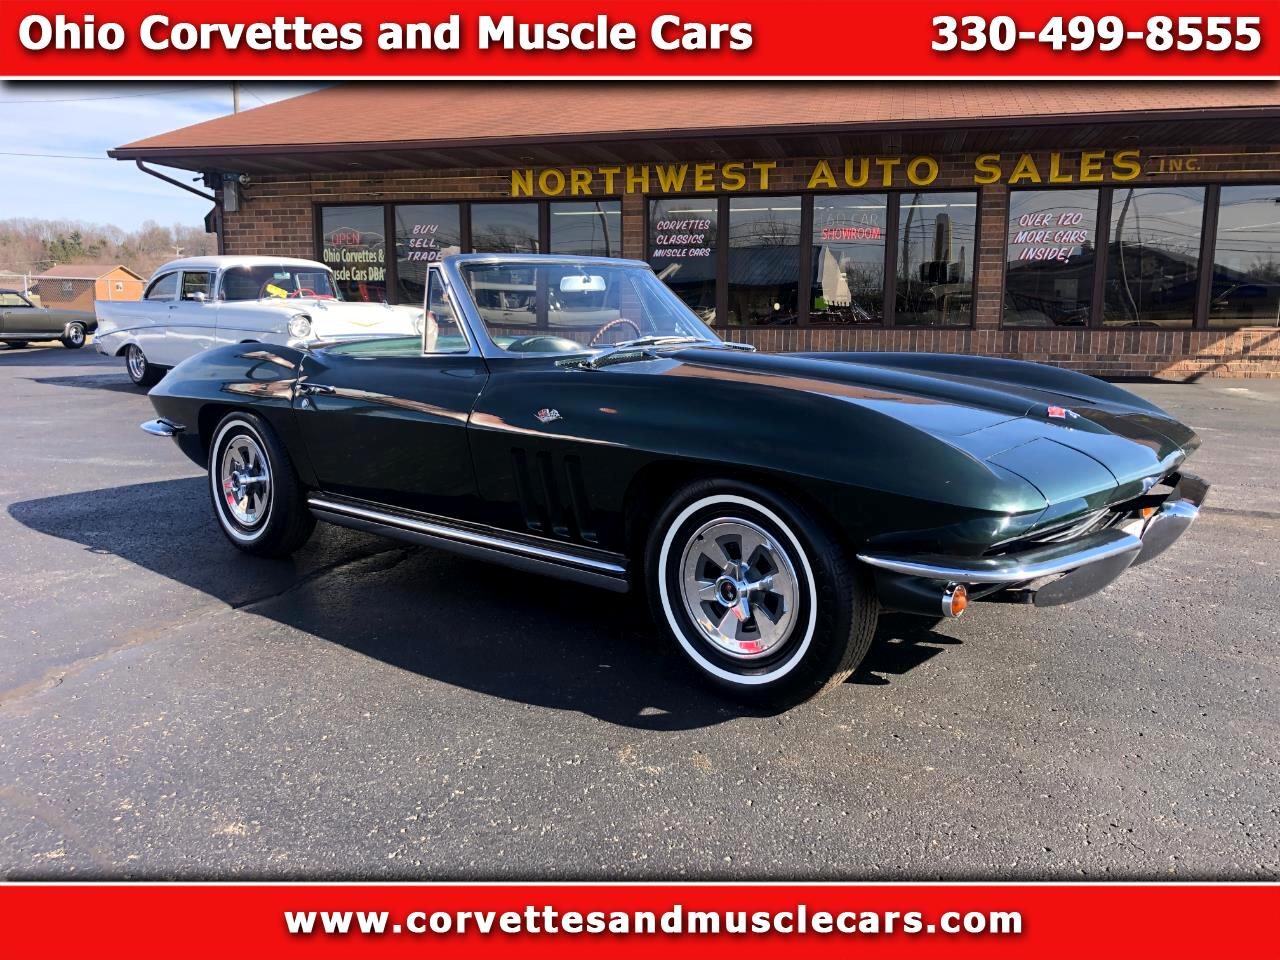 1965 Chevrolet Corvette Convertible photo